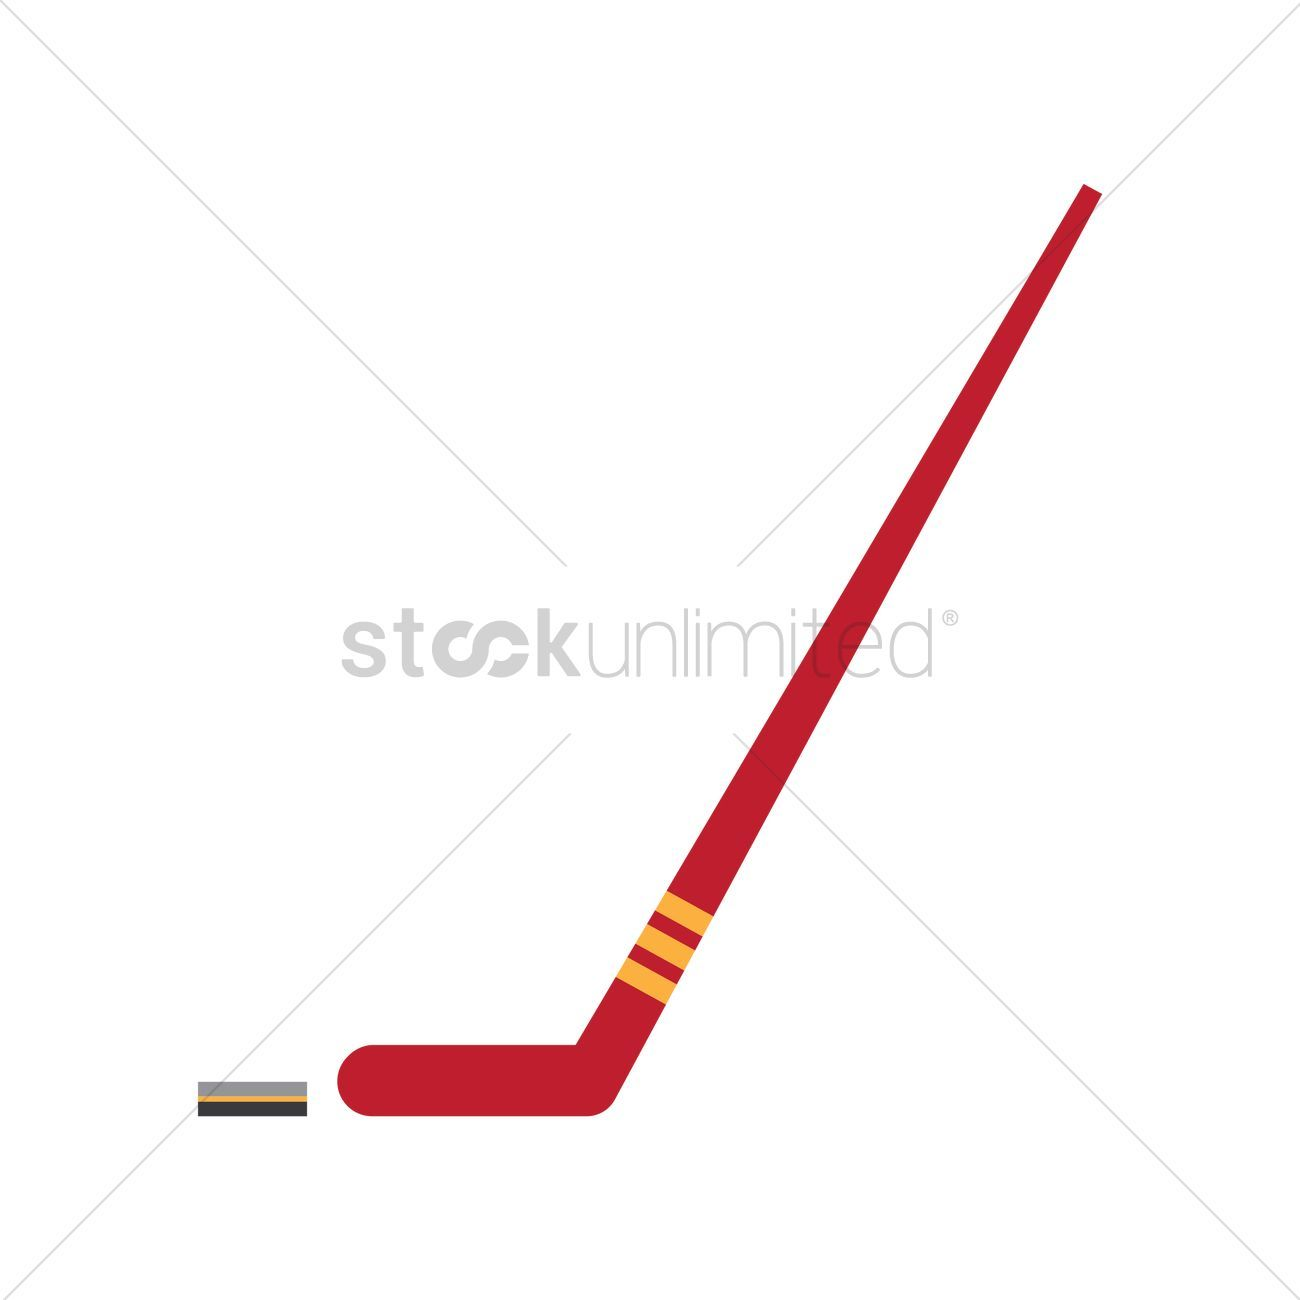 Ice Hockey Stick And Puck Vector Illustration Affiliate Stick Hockey Ice Illustration Vector Affil In 2020 Ice Hockey Sticks Abstract Design Hockey Stick